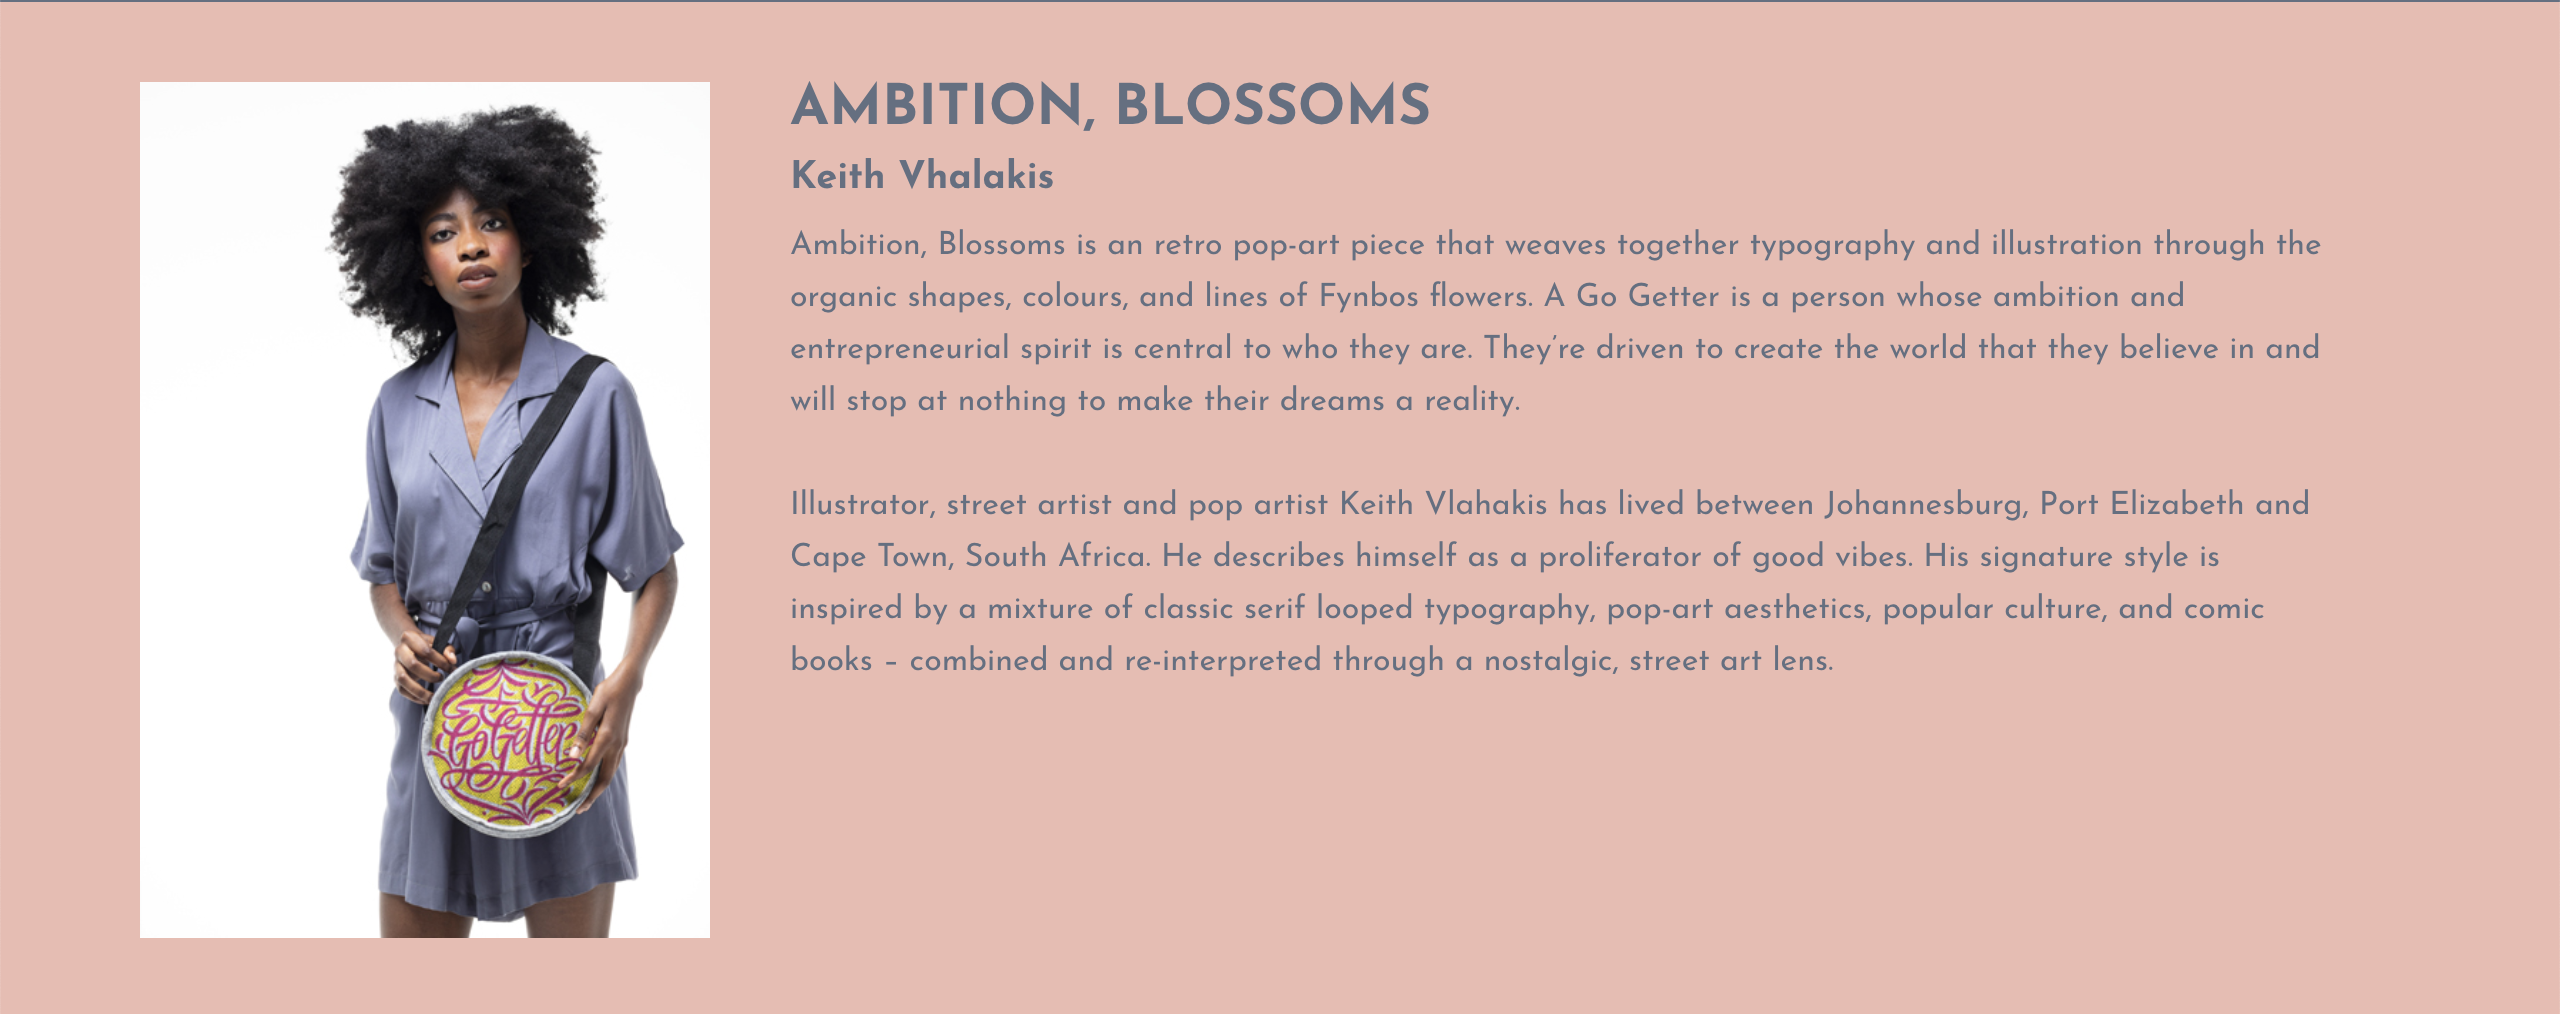 Ambition, blossoms.